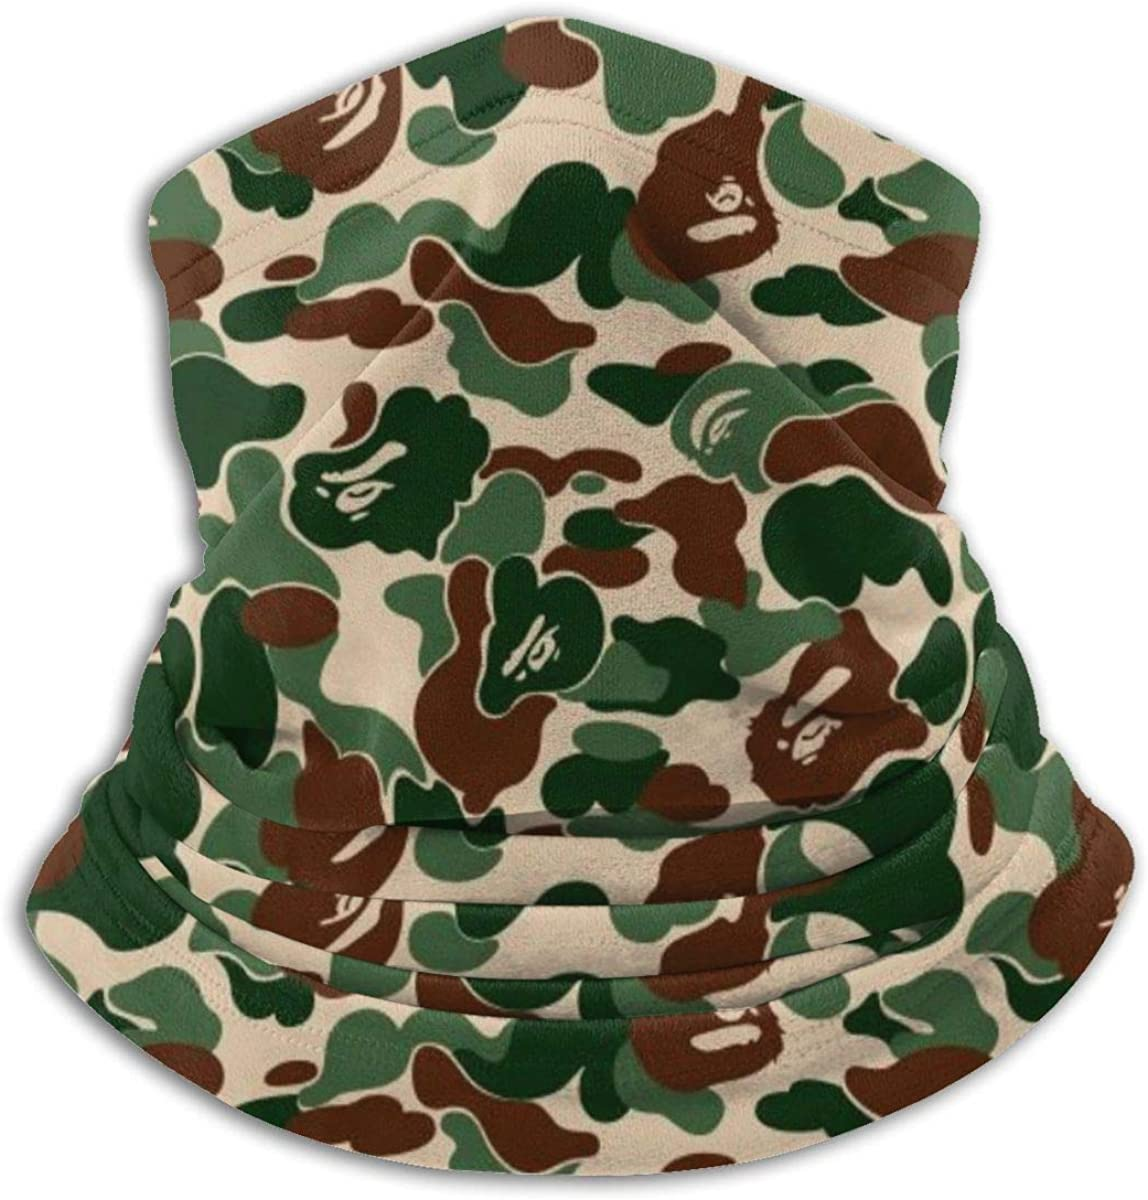 Bape Camo Green Microfiber Neck Warmer,Sports Face Guards,Windproof Dust Proof Mouth Face Mask Magic Scarf Balaclava